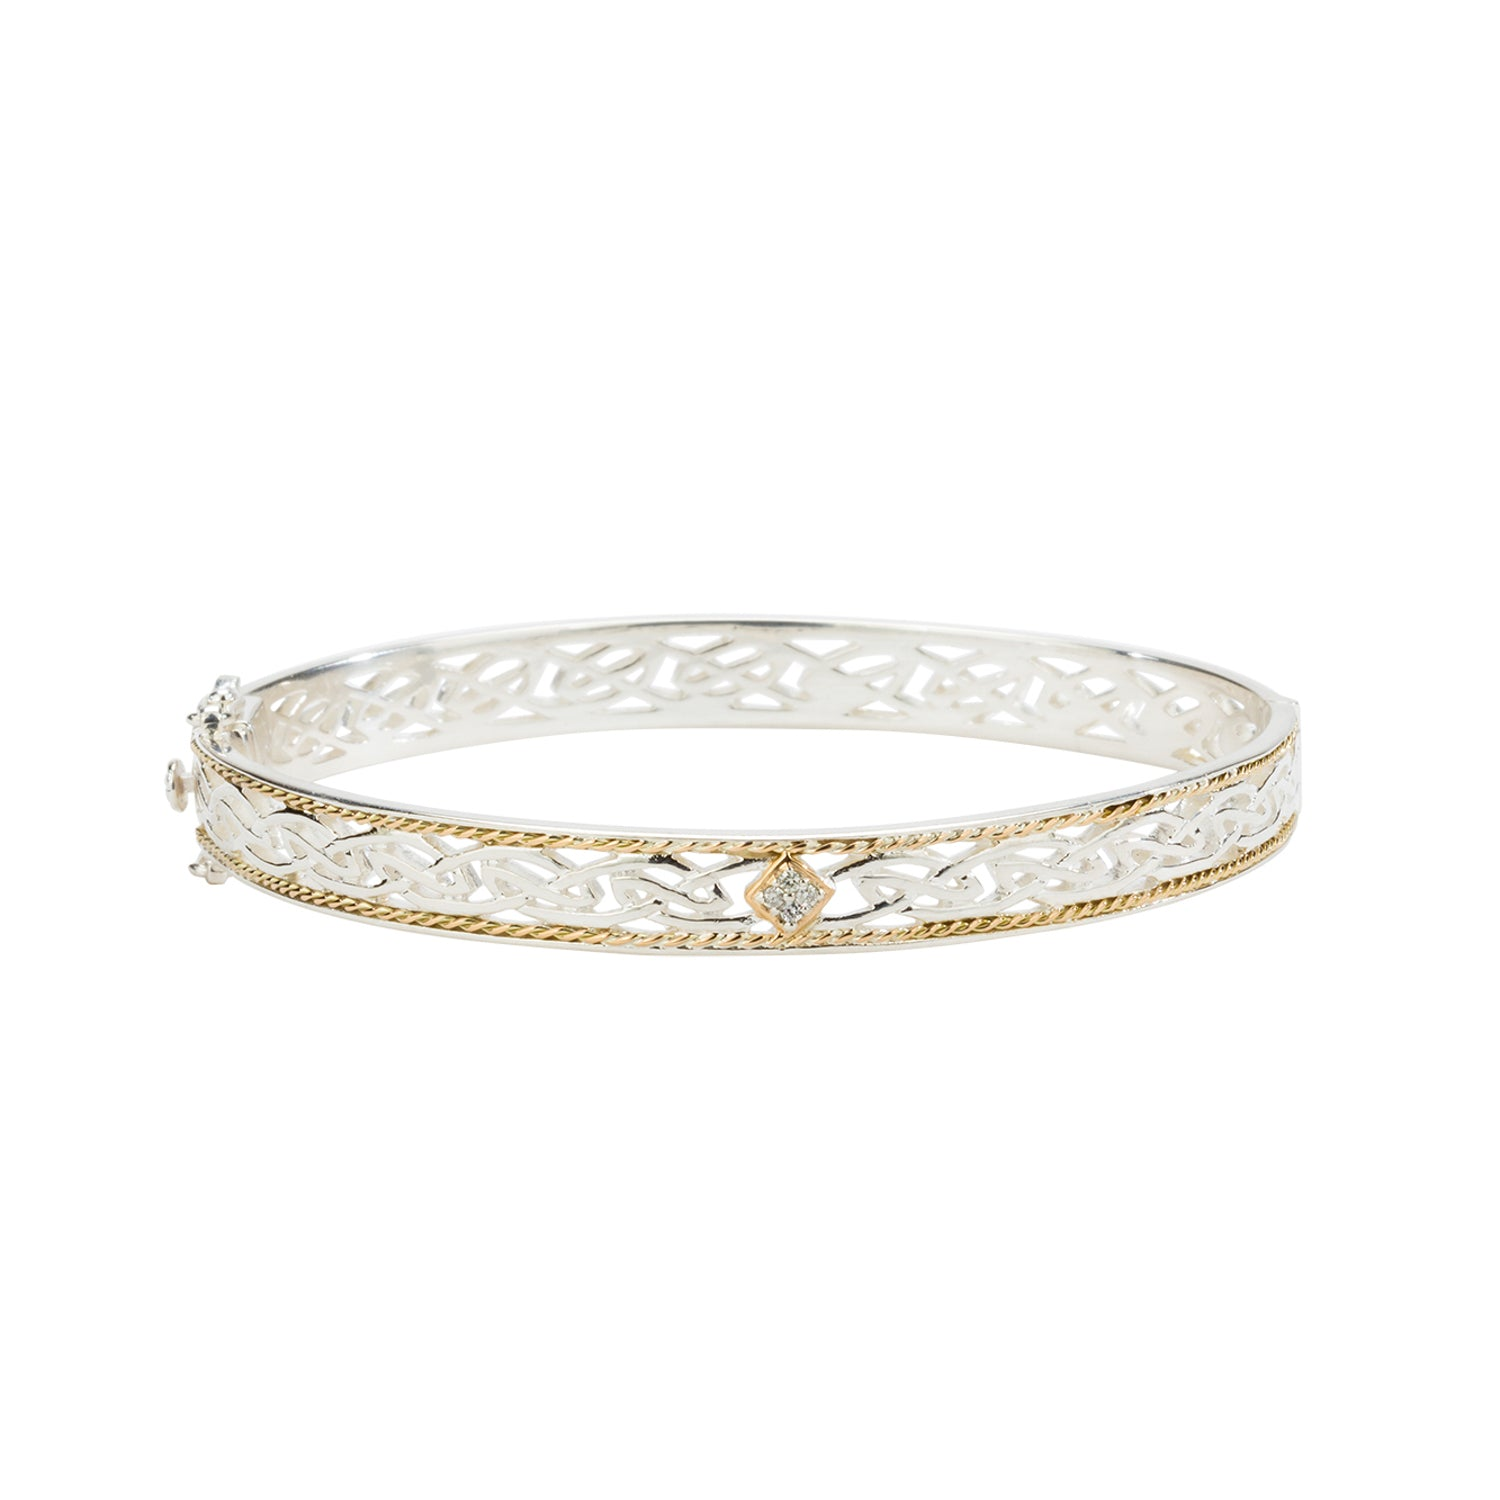 Bangle 10k Diamond TW 0.06ct Window to The Soul Bangle from welch and company jewelers near syracuse ny